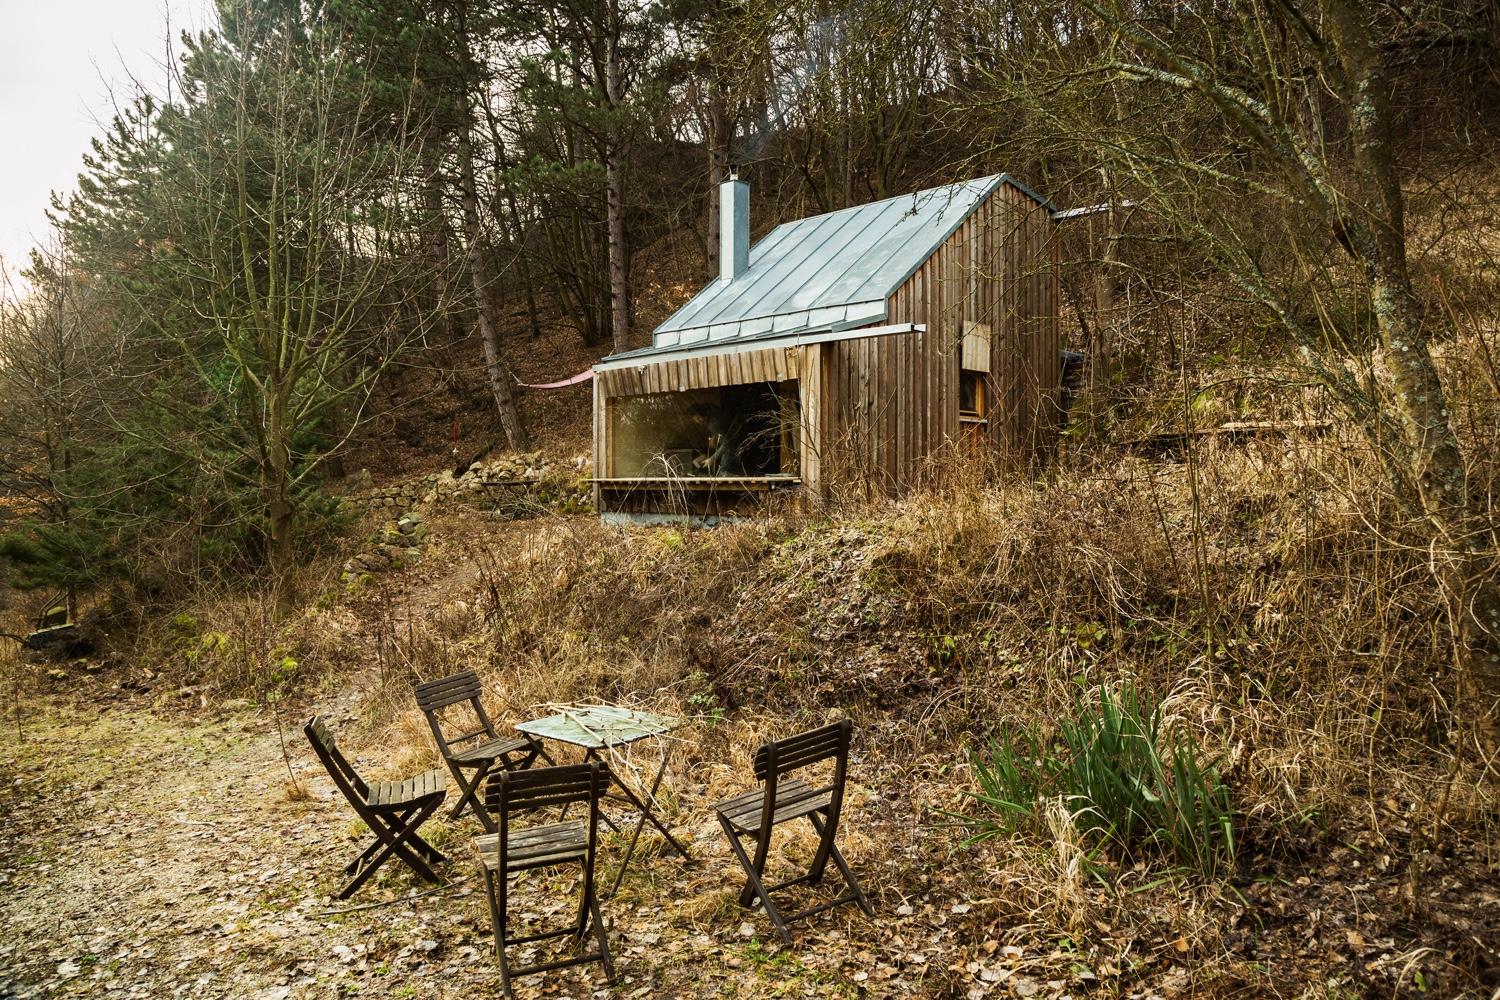 Tom's Hütte appears as a vision from Dolly Parton's Smoky Mountain childhood.